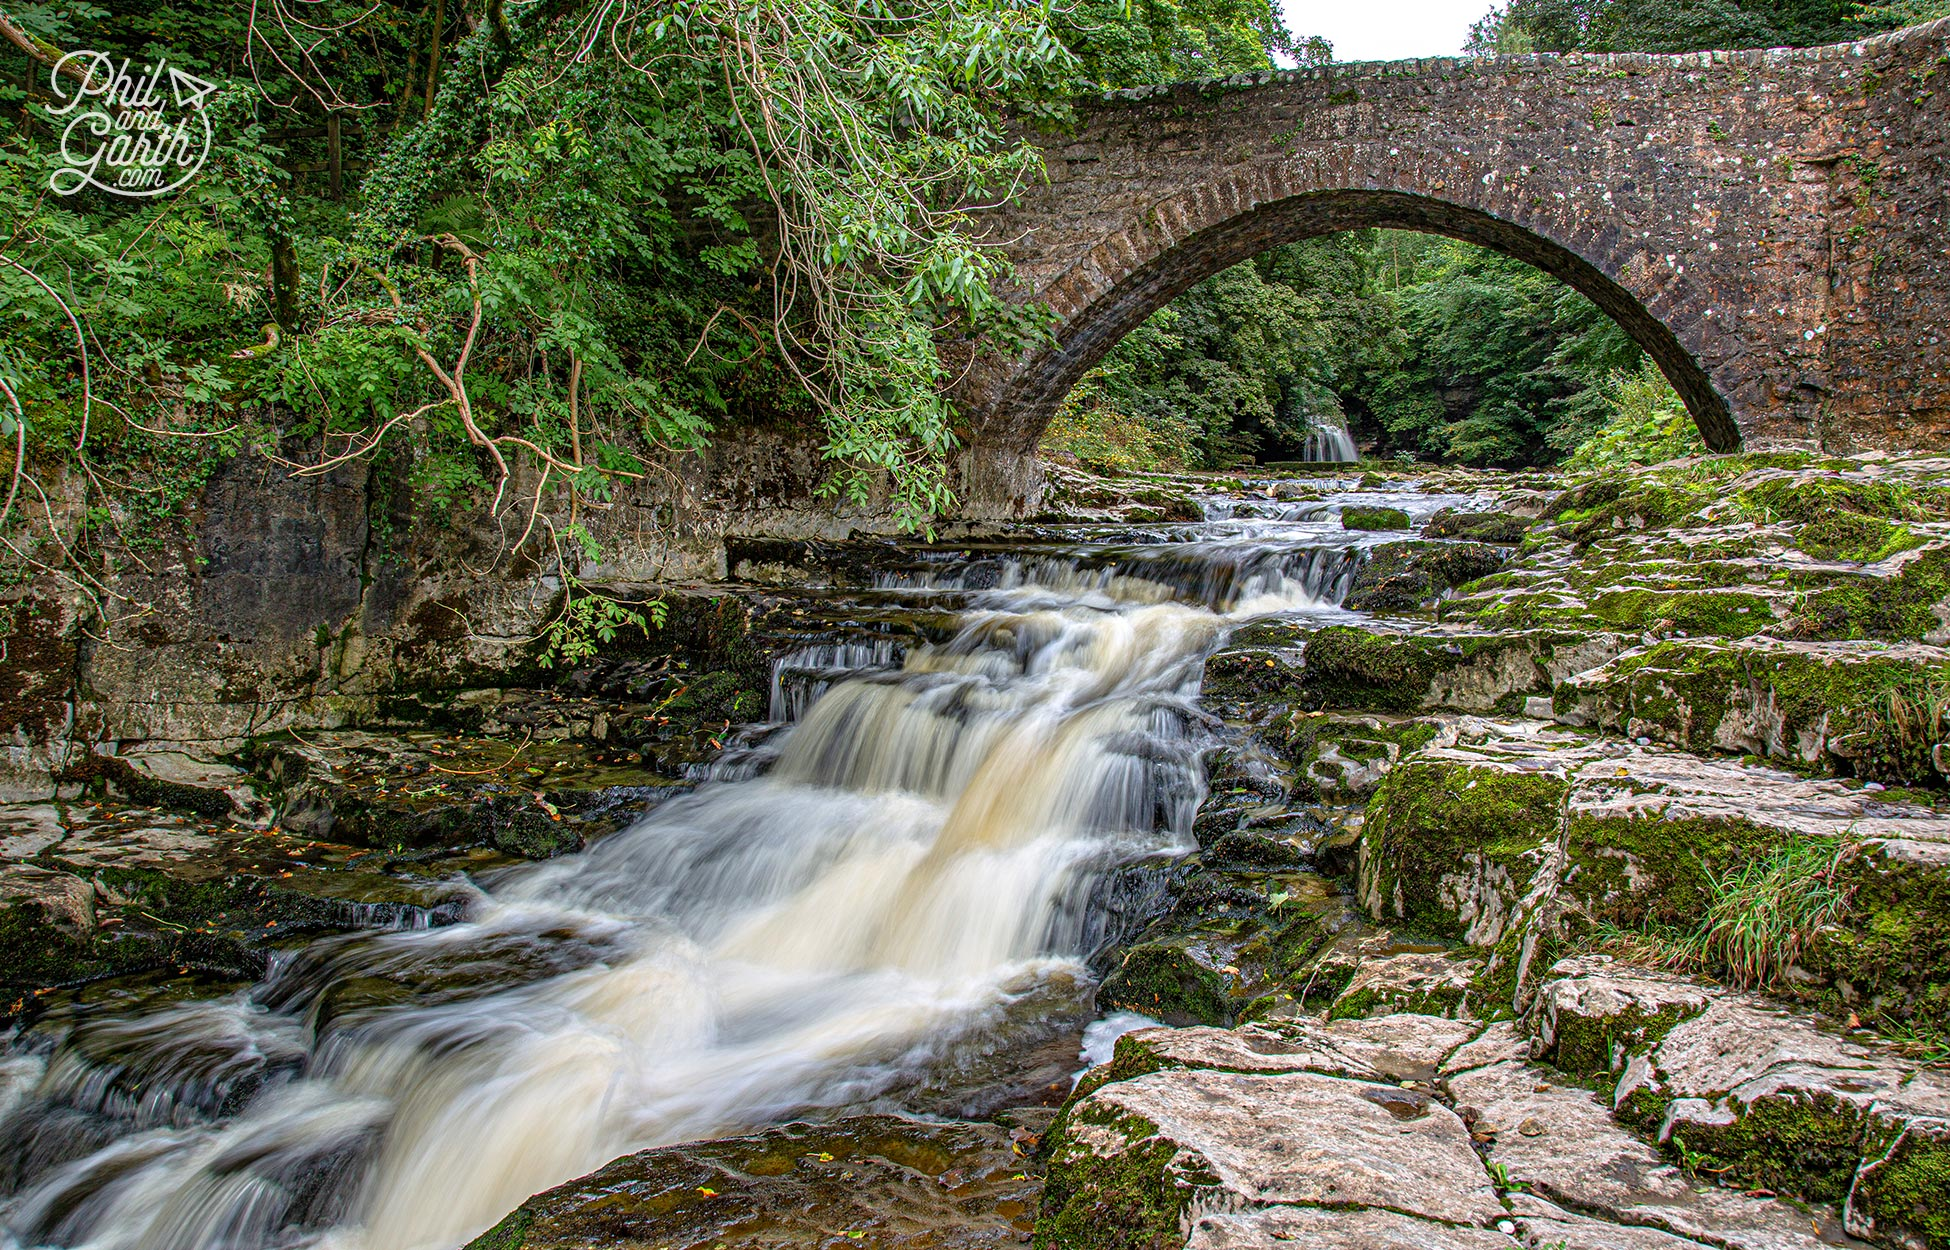 There's also a lovely stone bridge which you can use to frame the waterfall in the distance